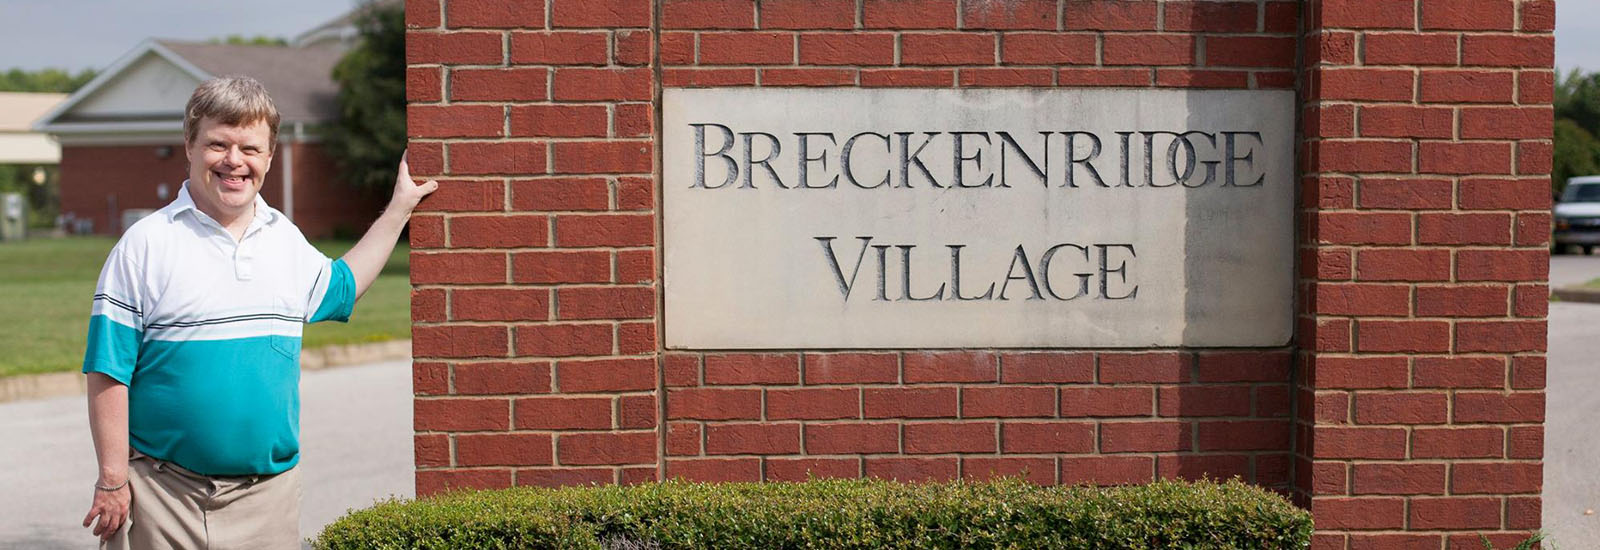 Photo: Jimmy Breckenridge poses with Breckenridge Village sign